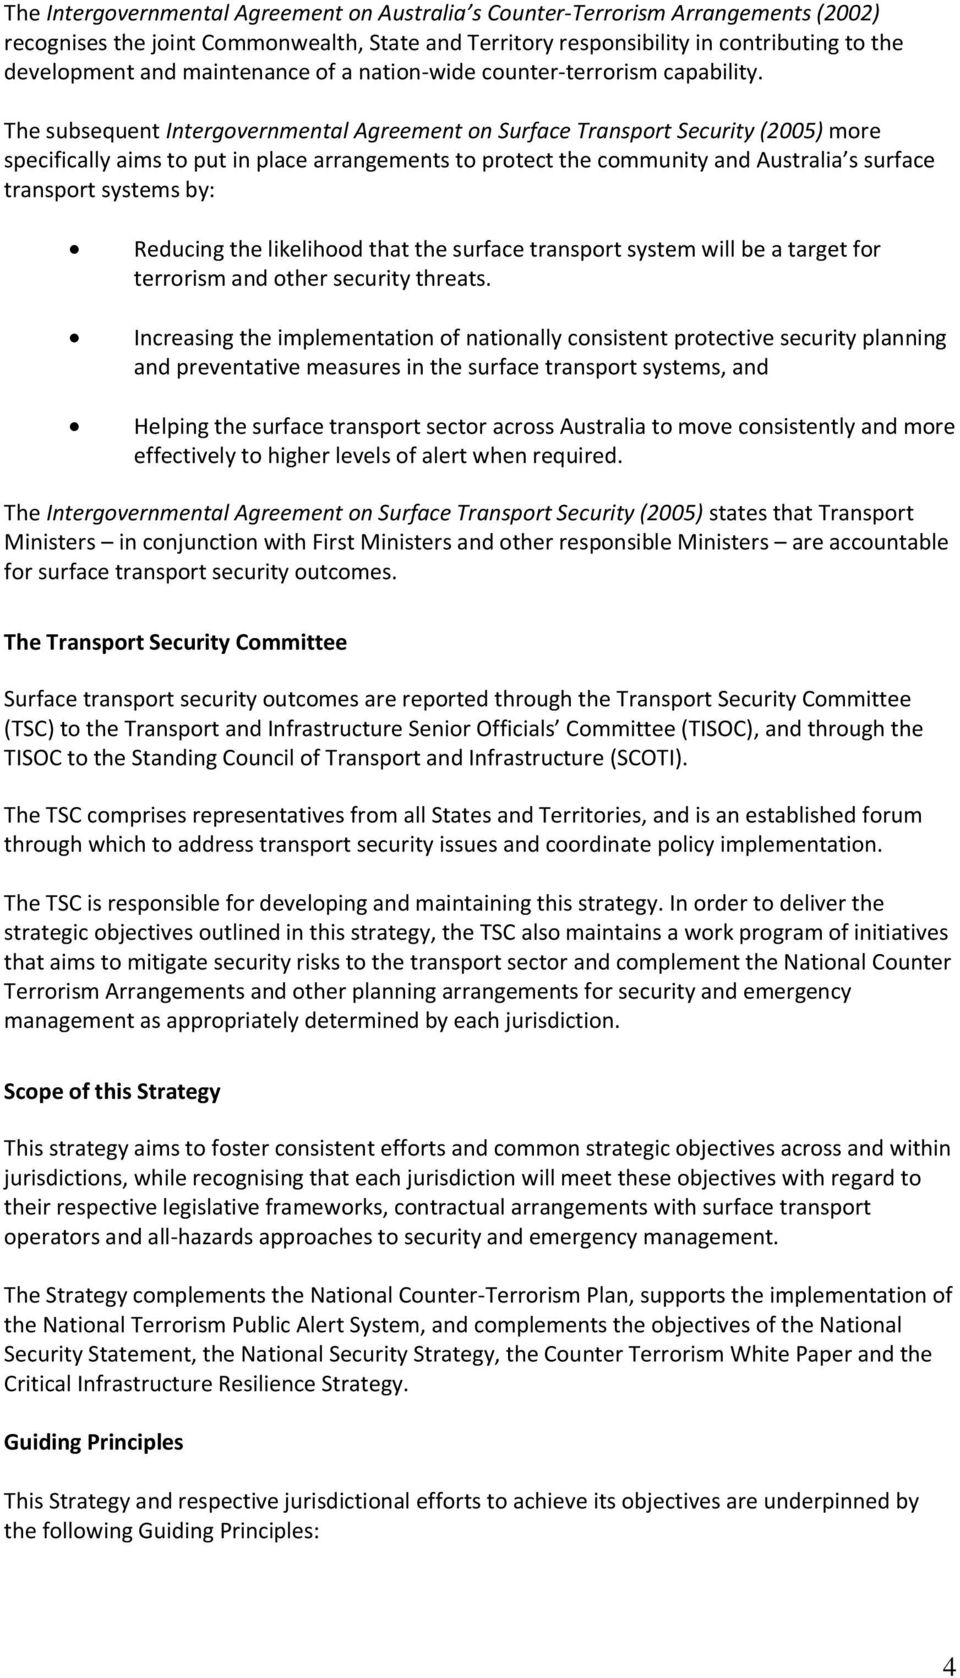 The subsequent Intergovernmental Agreement on Surface Transport Security (2005) more specifically aims to put in place arrangements to protect the community and Australia s surface transport systems